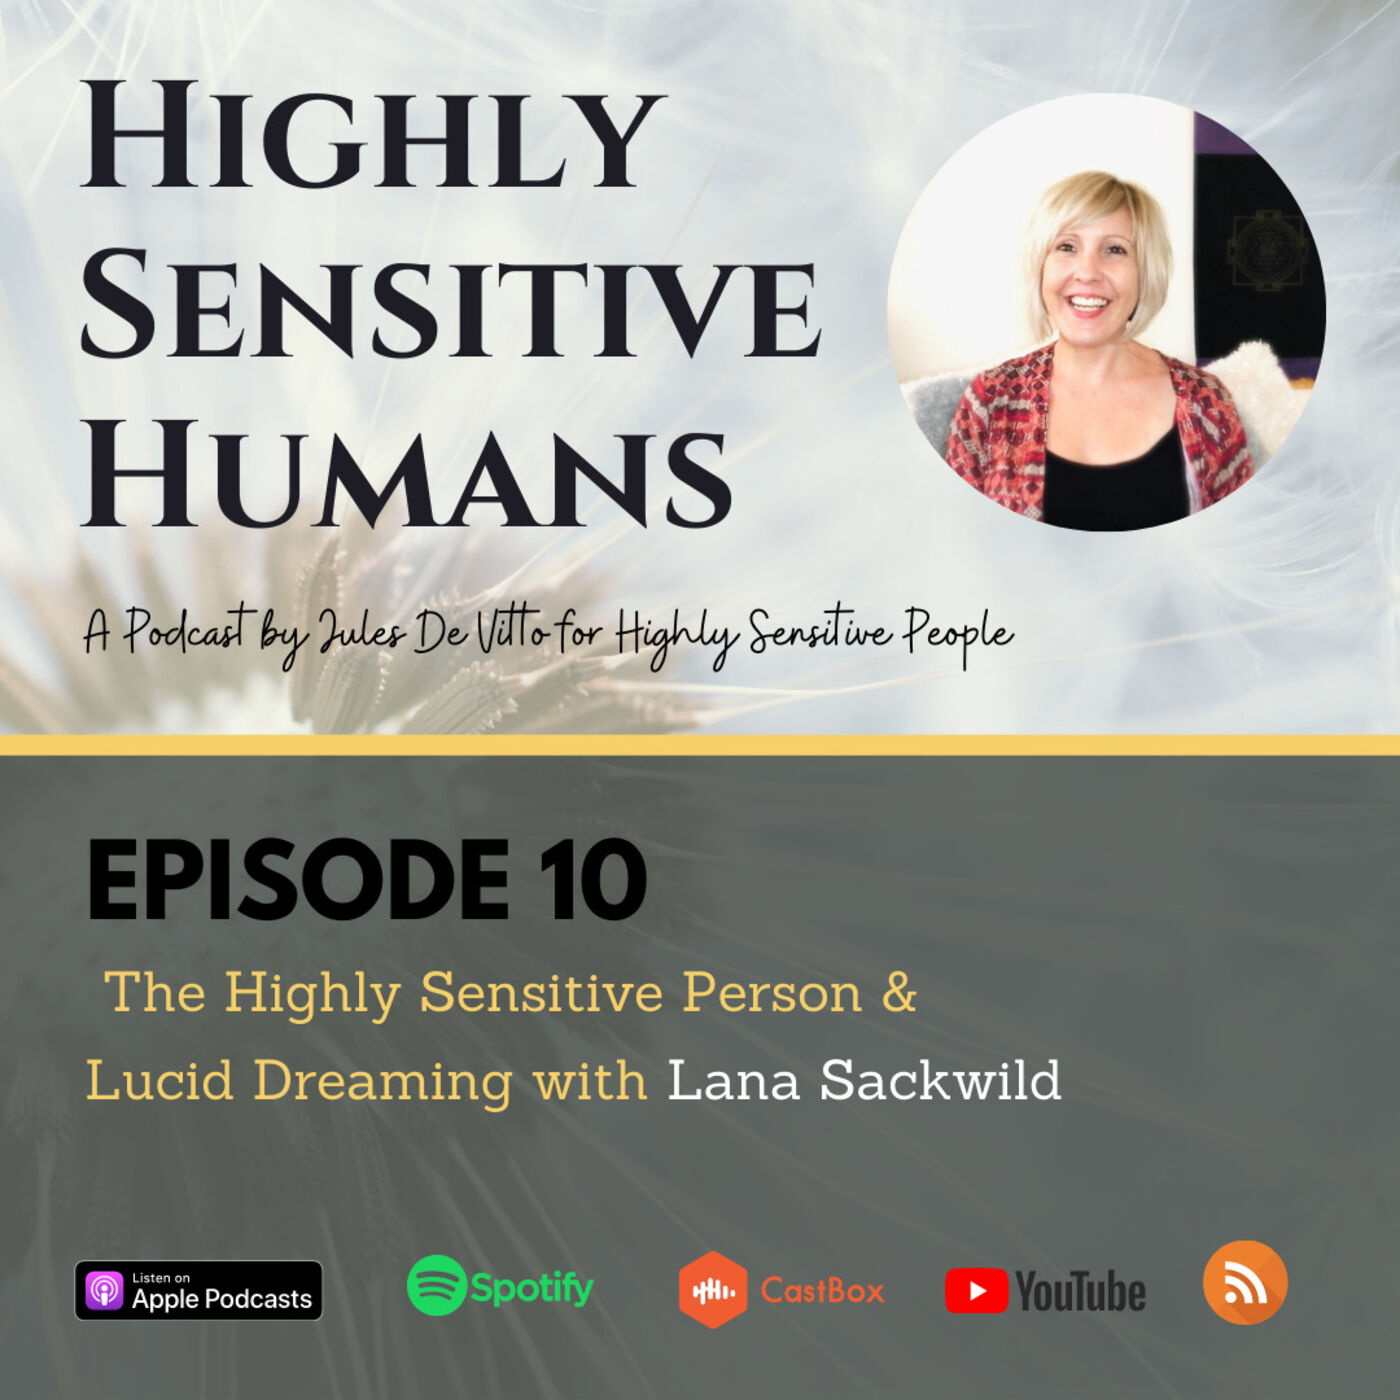 The Highly Sensitive Person and Lucid Dreaming with Lana Sackwild